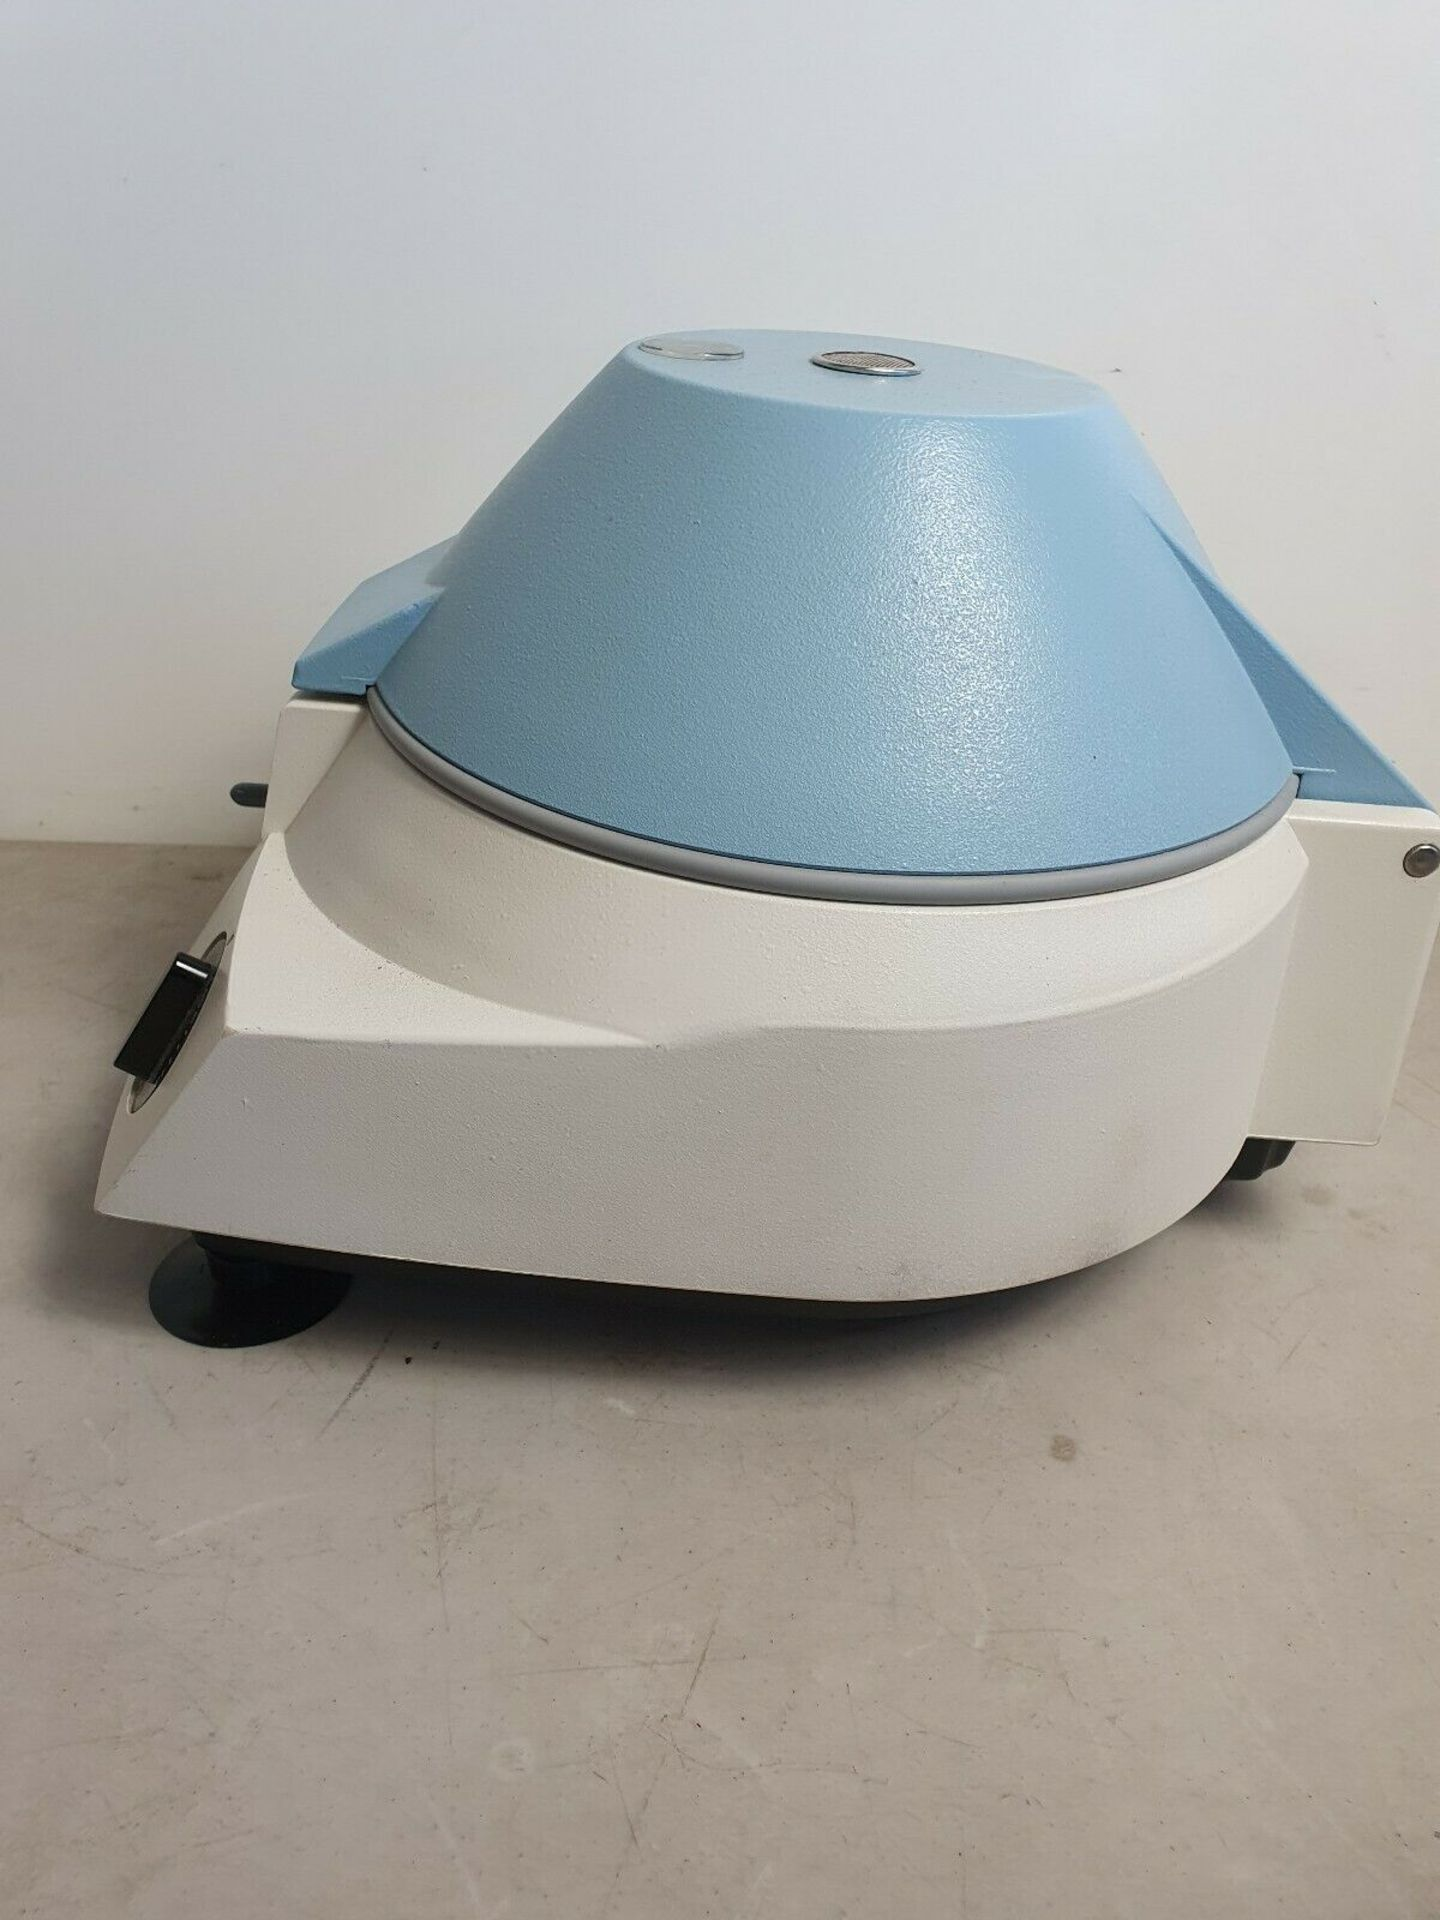 Lot 6 - Medilite Thermo Micro Centrifuge | YOM: 2006